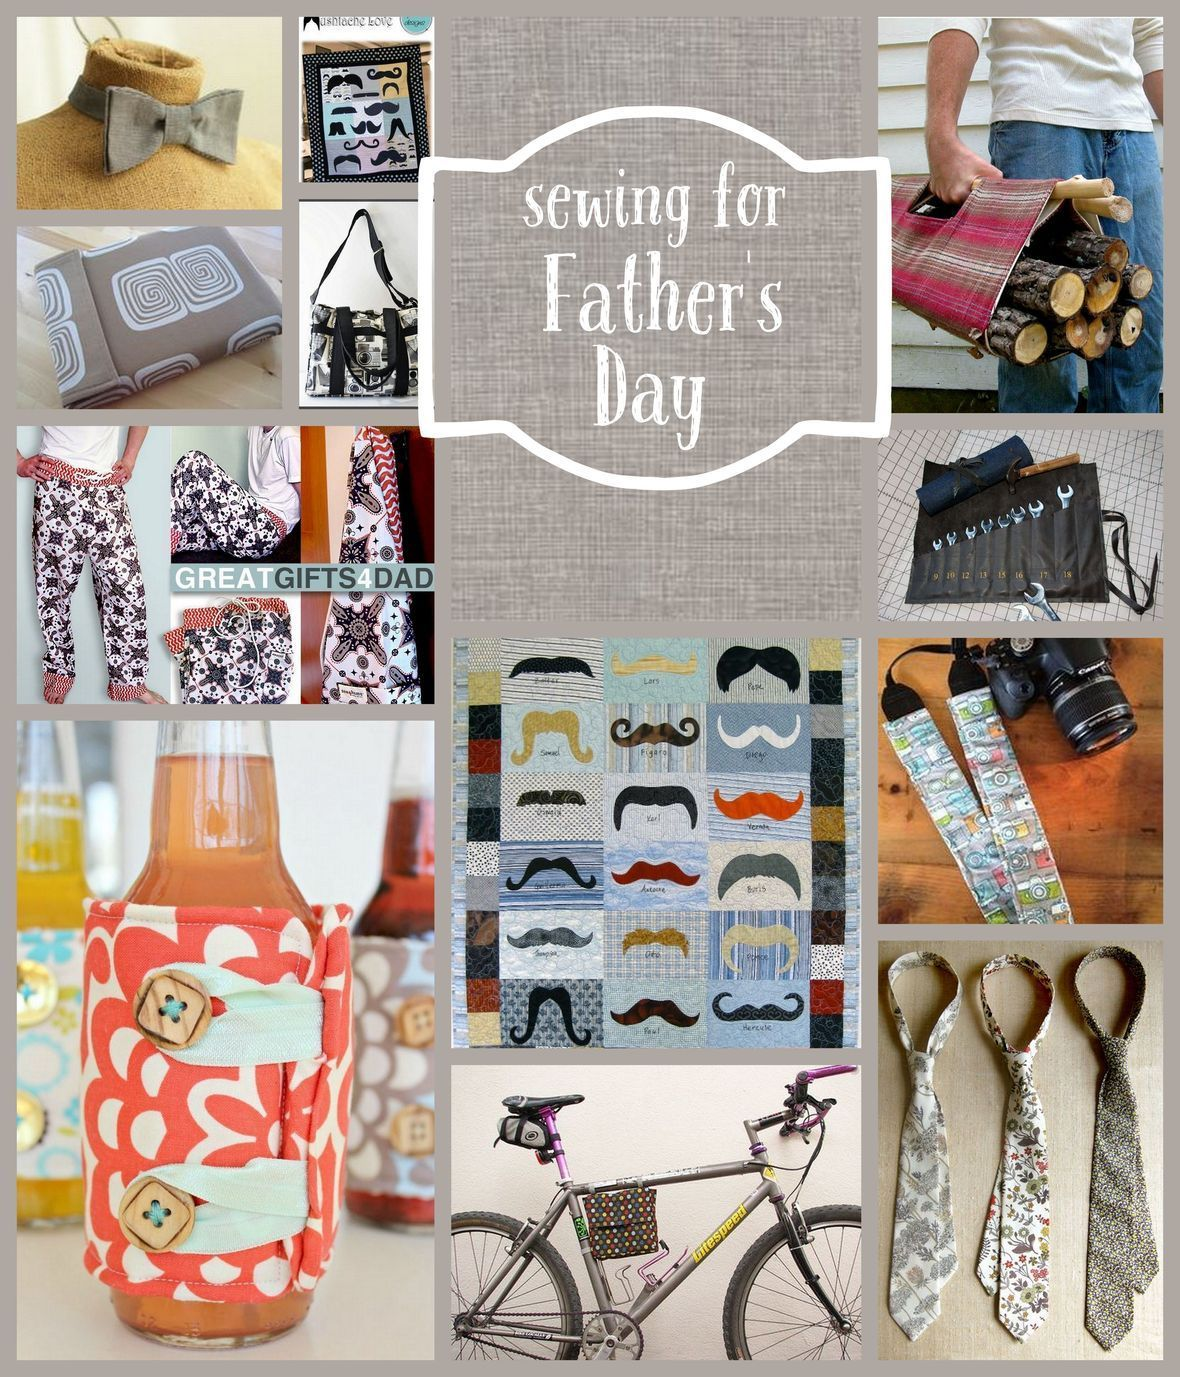 Father s Day Sewing Poster2